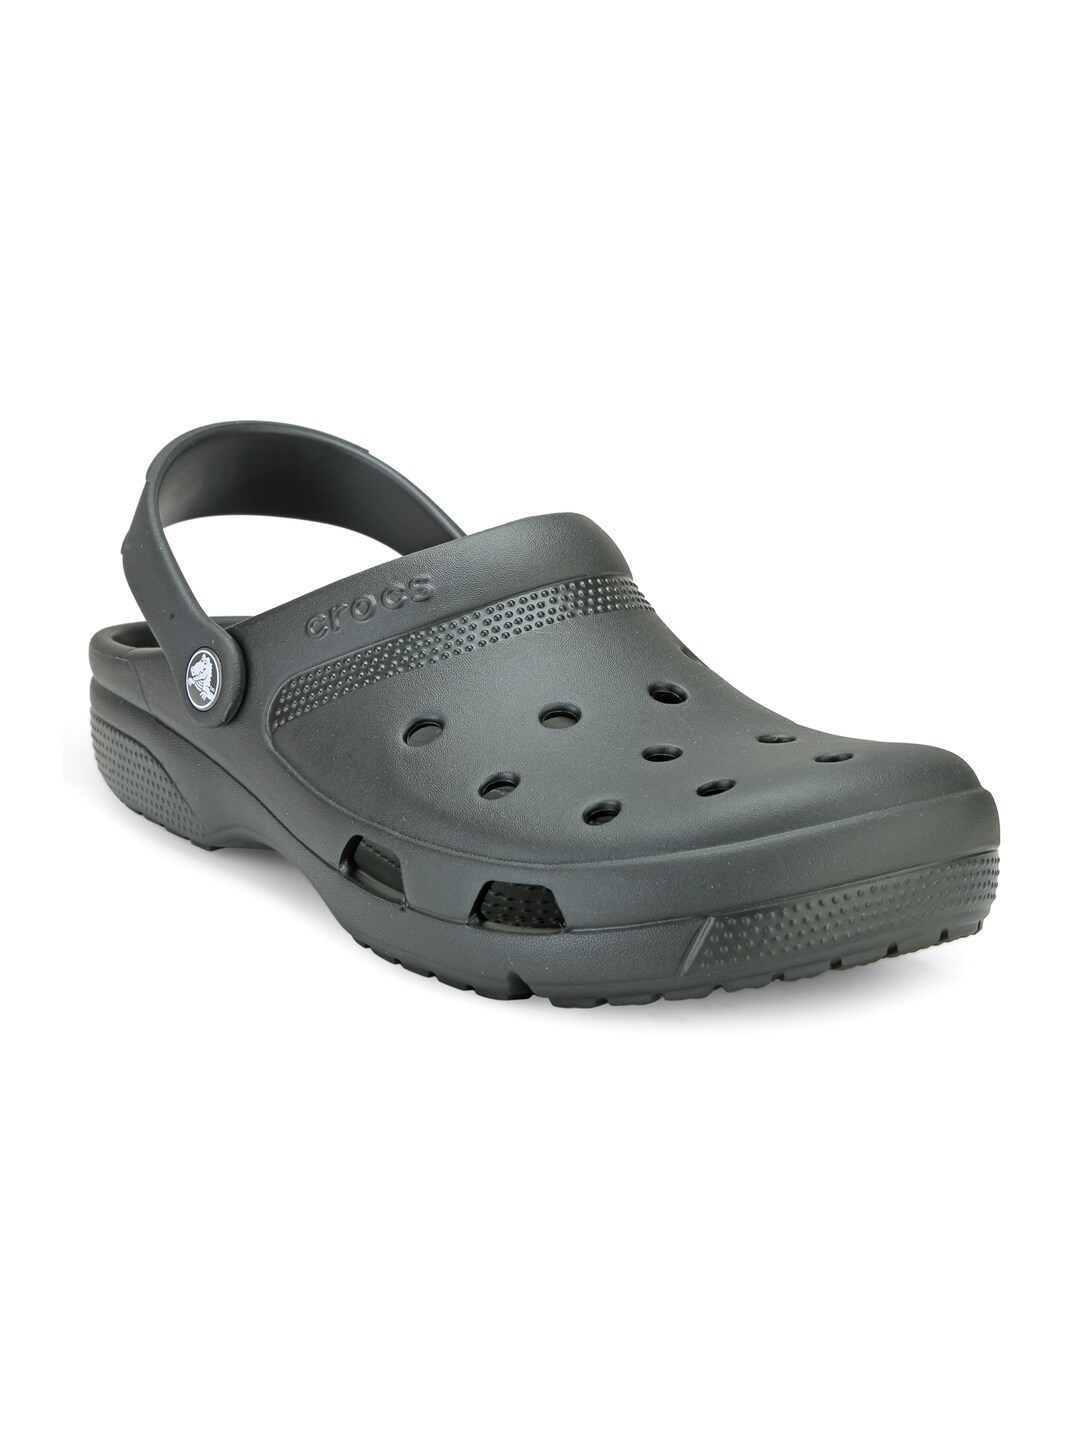 a5be613423689 Crocs Shoes Online - Buy Crocs Flip Flops   Sandals Online in India - Myntra